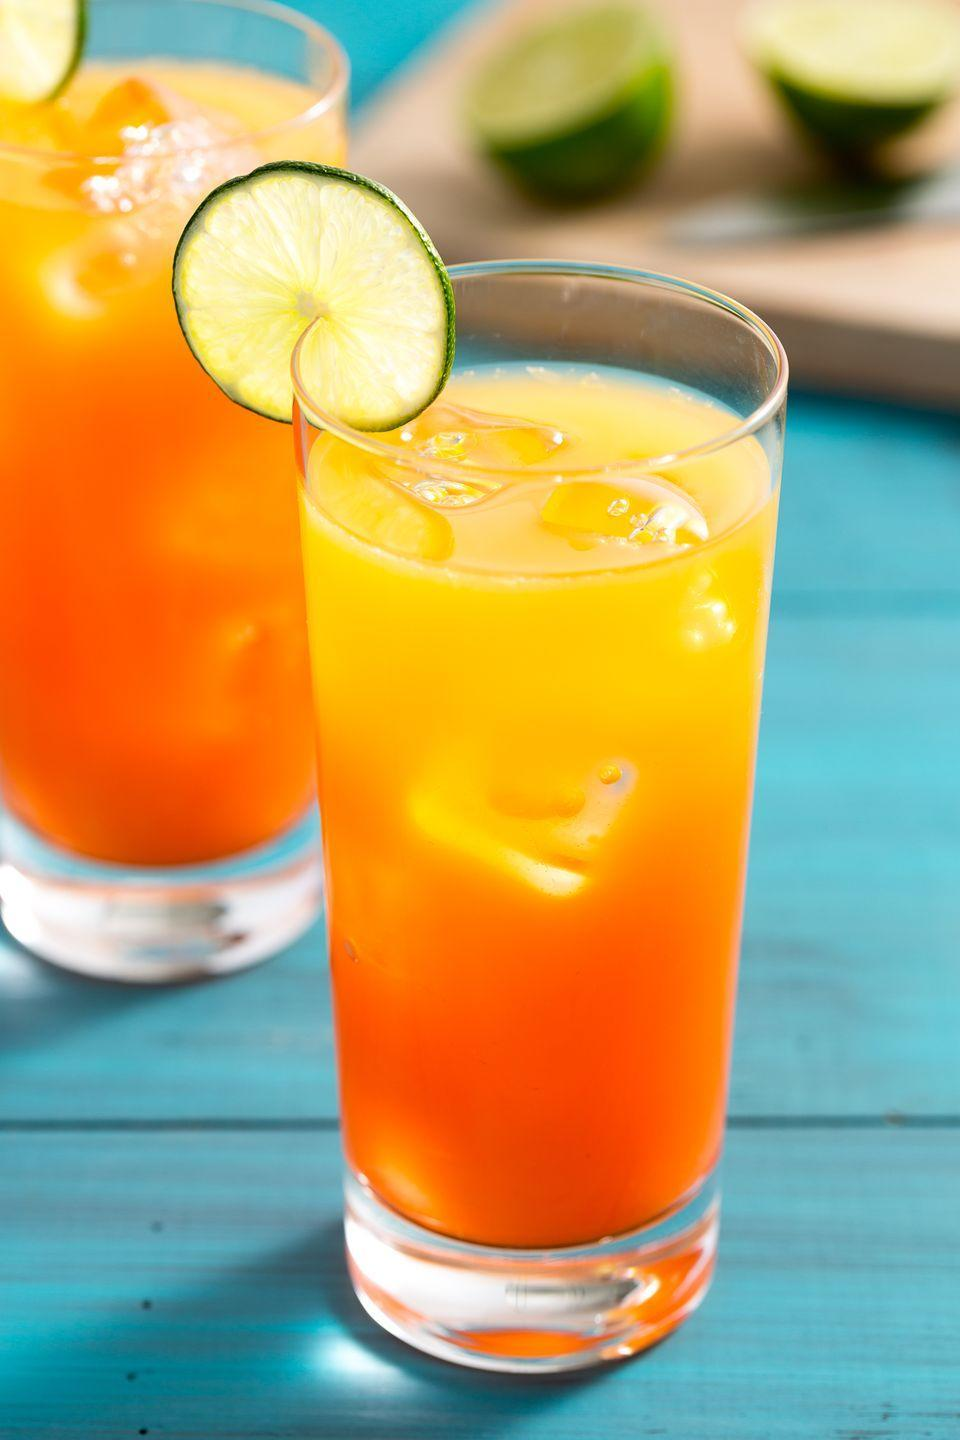 """<p>What's more romantic than a sunset?</p><p>Get the recipe from <a href=""""https://www.delish.com/cooking/recipe-ideas/recipes/a3383/rum-sunset-drink-recipes/"""" rel=""""nofollow noopener"""" target=""""_blank"""" data-ylk=""""slk:Delish"""" class=""""link rapid-noclick-resp"""">Delish</a>.</p>"""